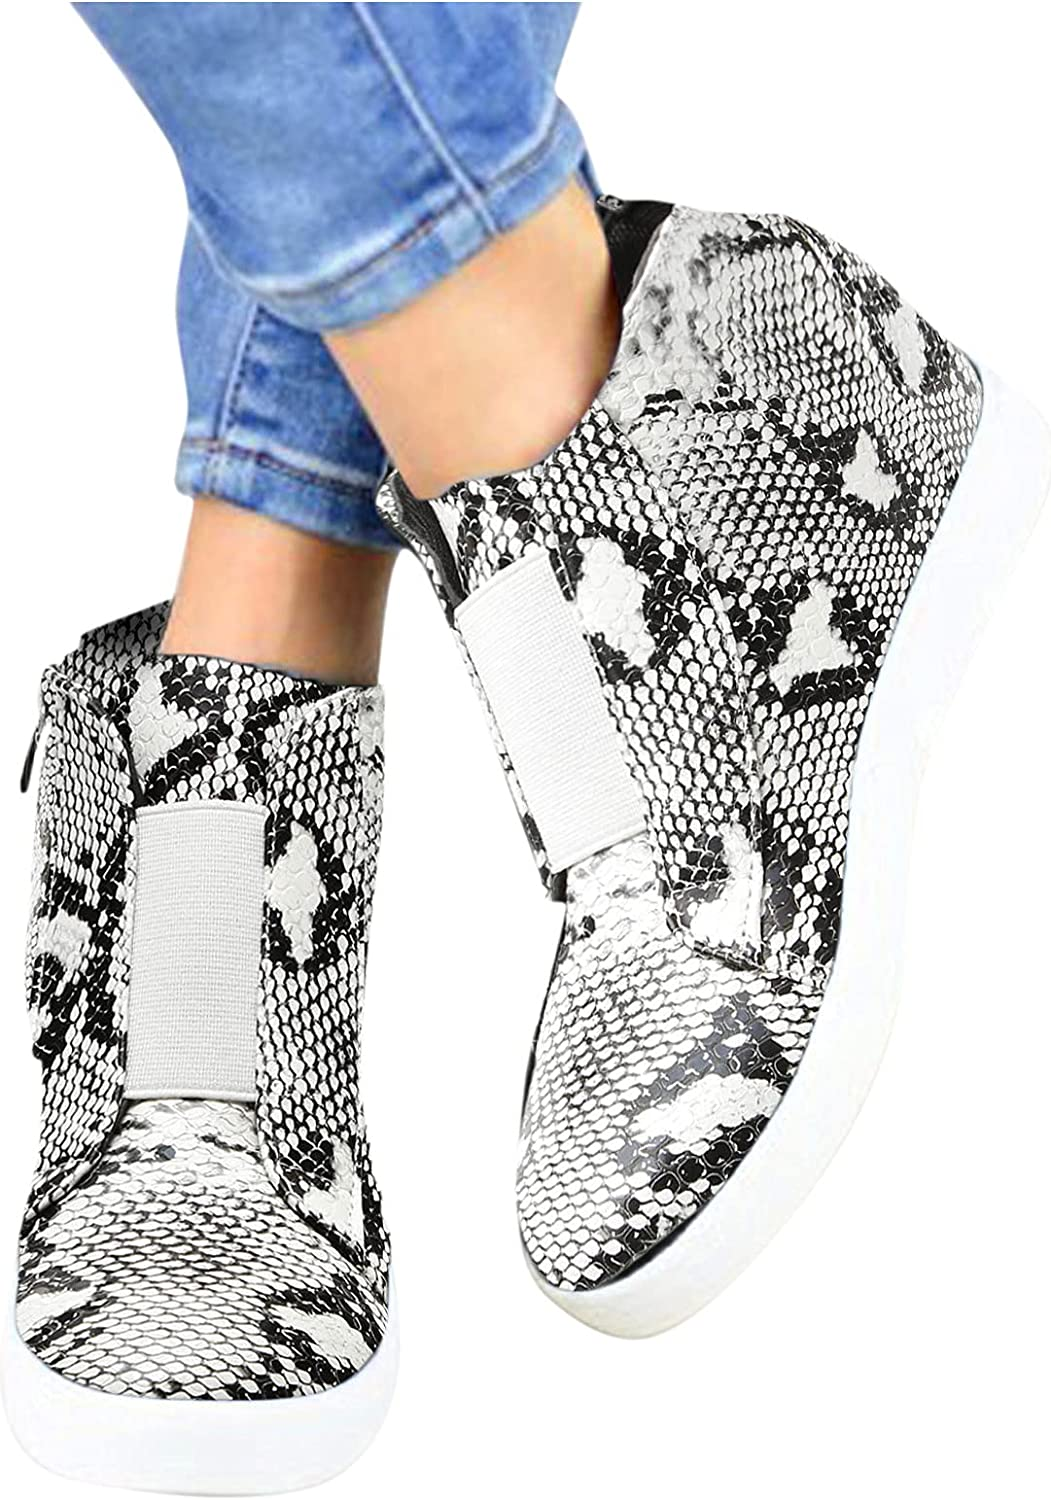 Niceast Sneakers for Women Running Shoes,Womens Fashion Retro Slip On Casual Wedges Sneaker Shoes